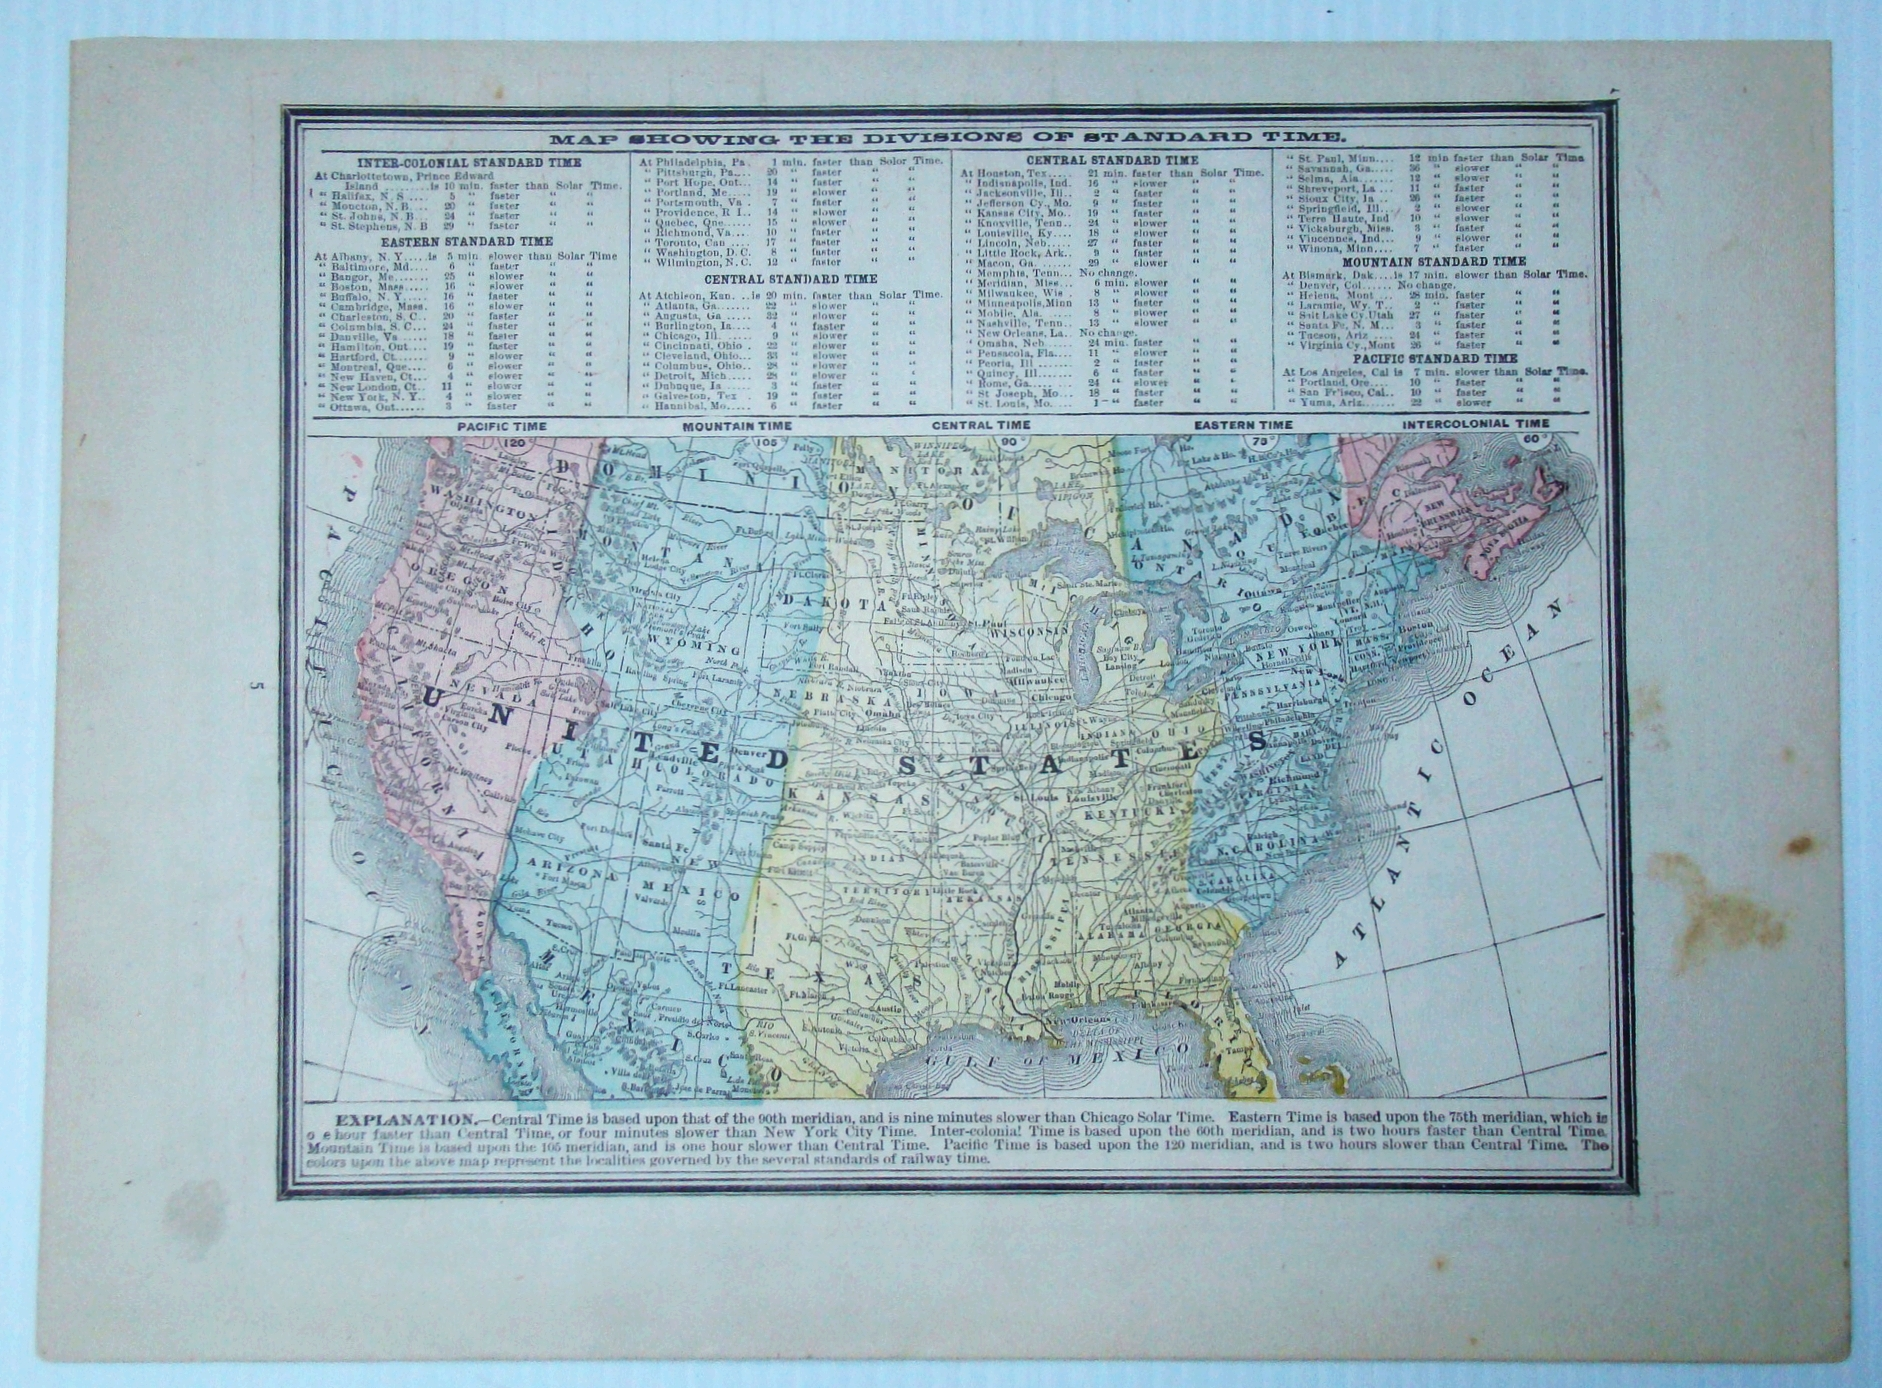 Image for 1889 Color Map of the Lower 48 States of the United States (U.S.A.) Indicating Divisions of Standard Time